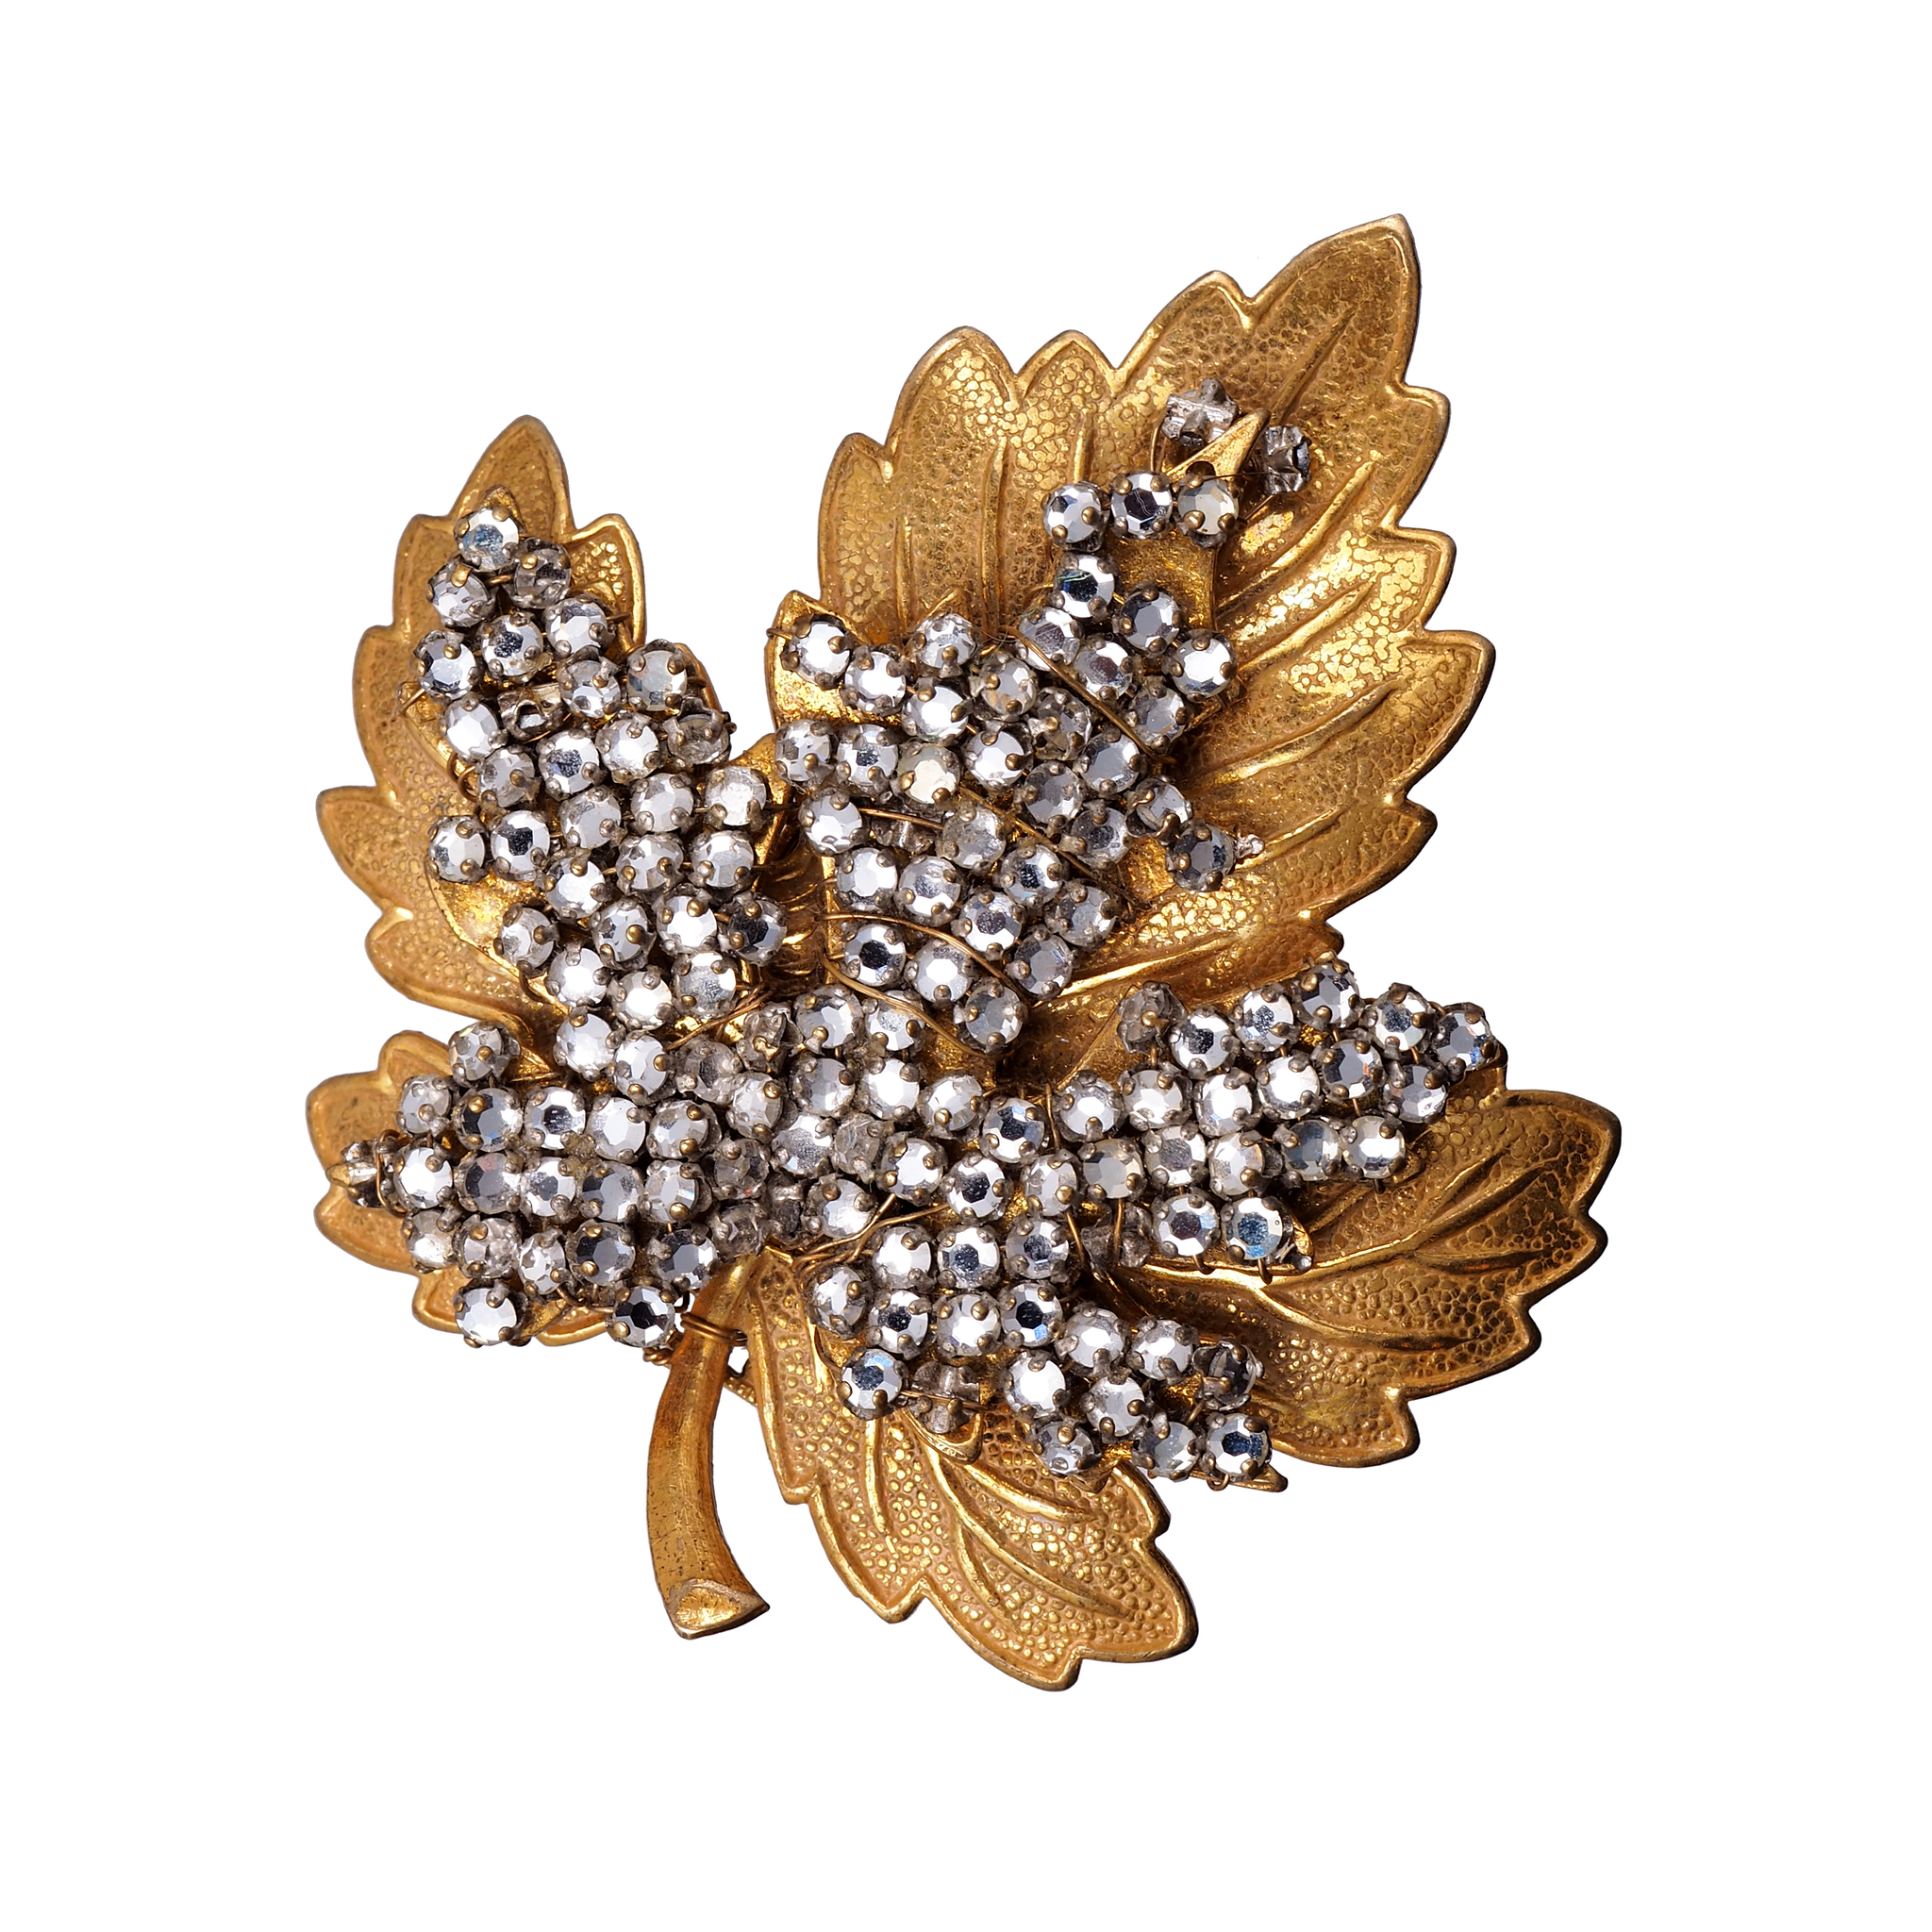 Amazing brooch by Miriam Haskell